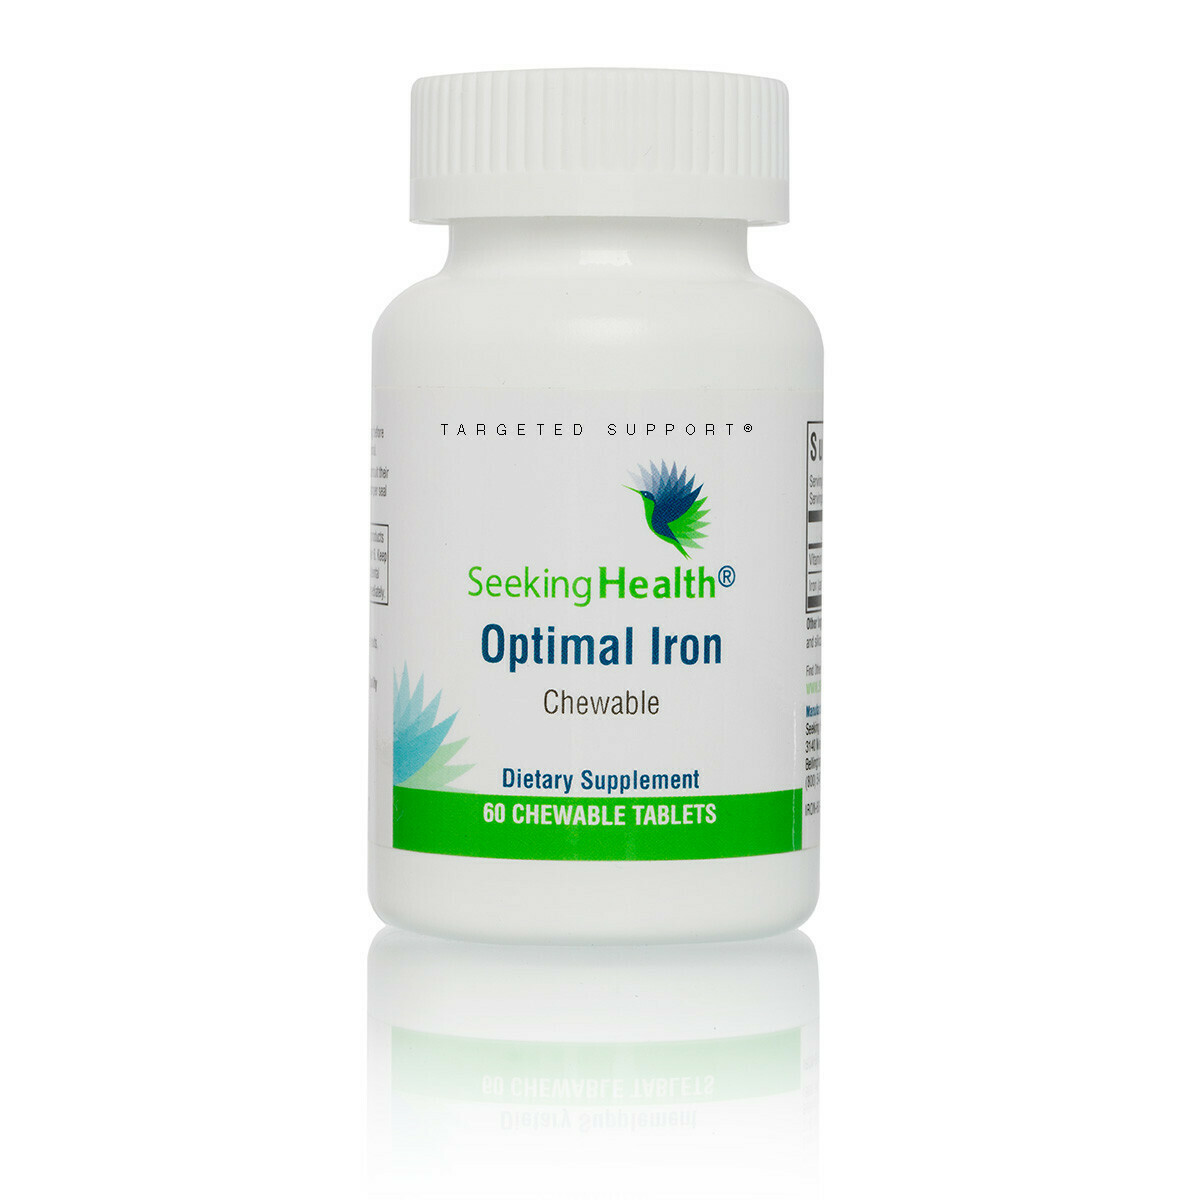 OPTIMAL IRON CHEWABLE - 60 TABLETS